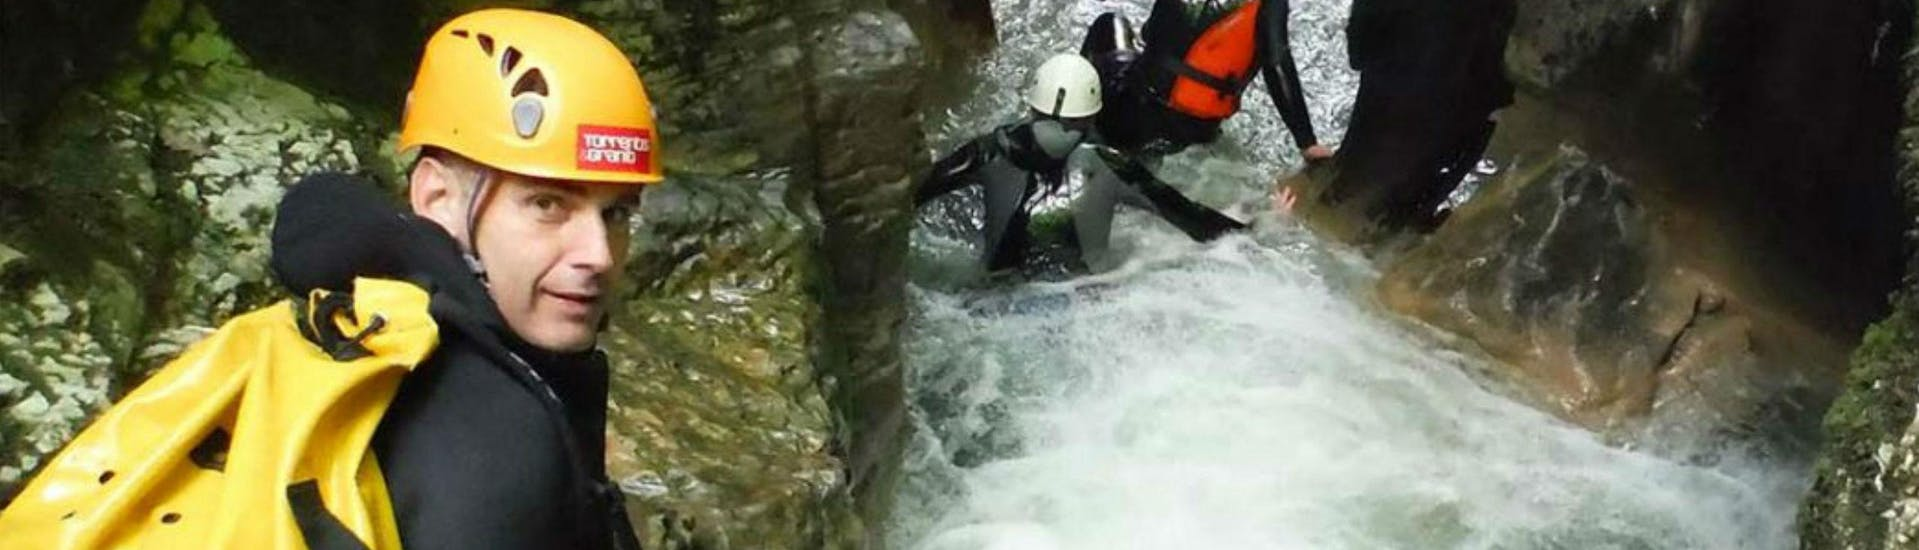 """Canyoning enthusiasts are progressing in the canyon during their Canyoning """"Day Sports"""" - Canyon du Haut Chassezac with Torrents & Granit."""